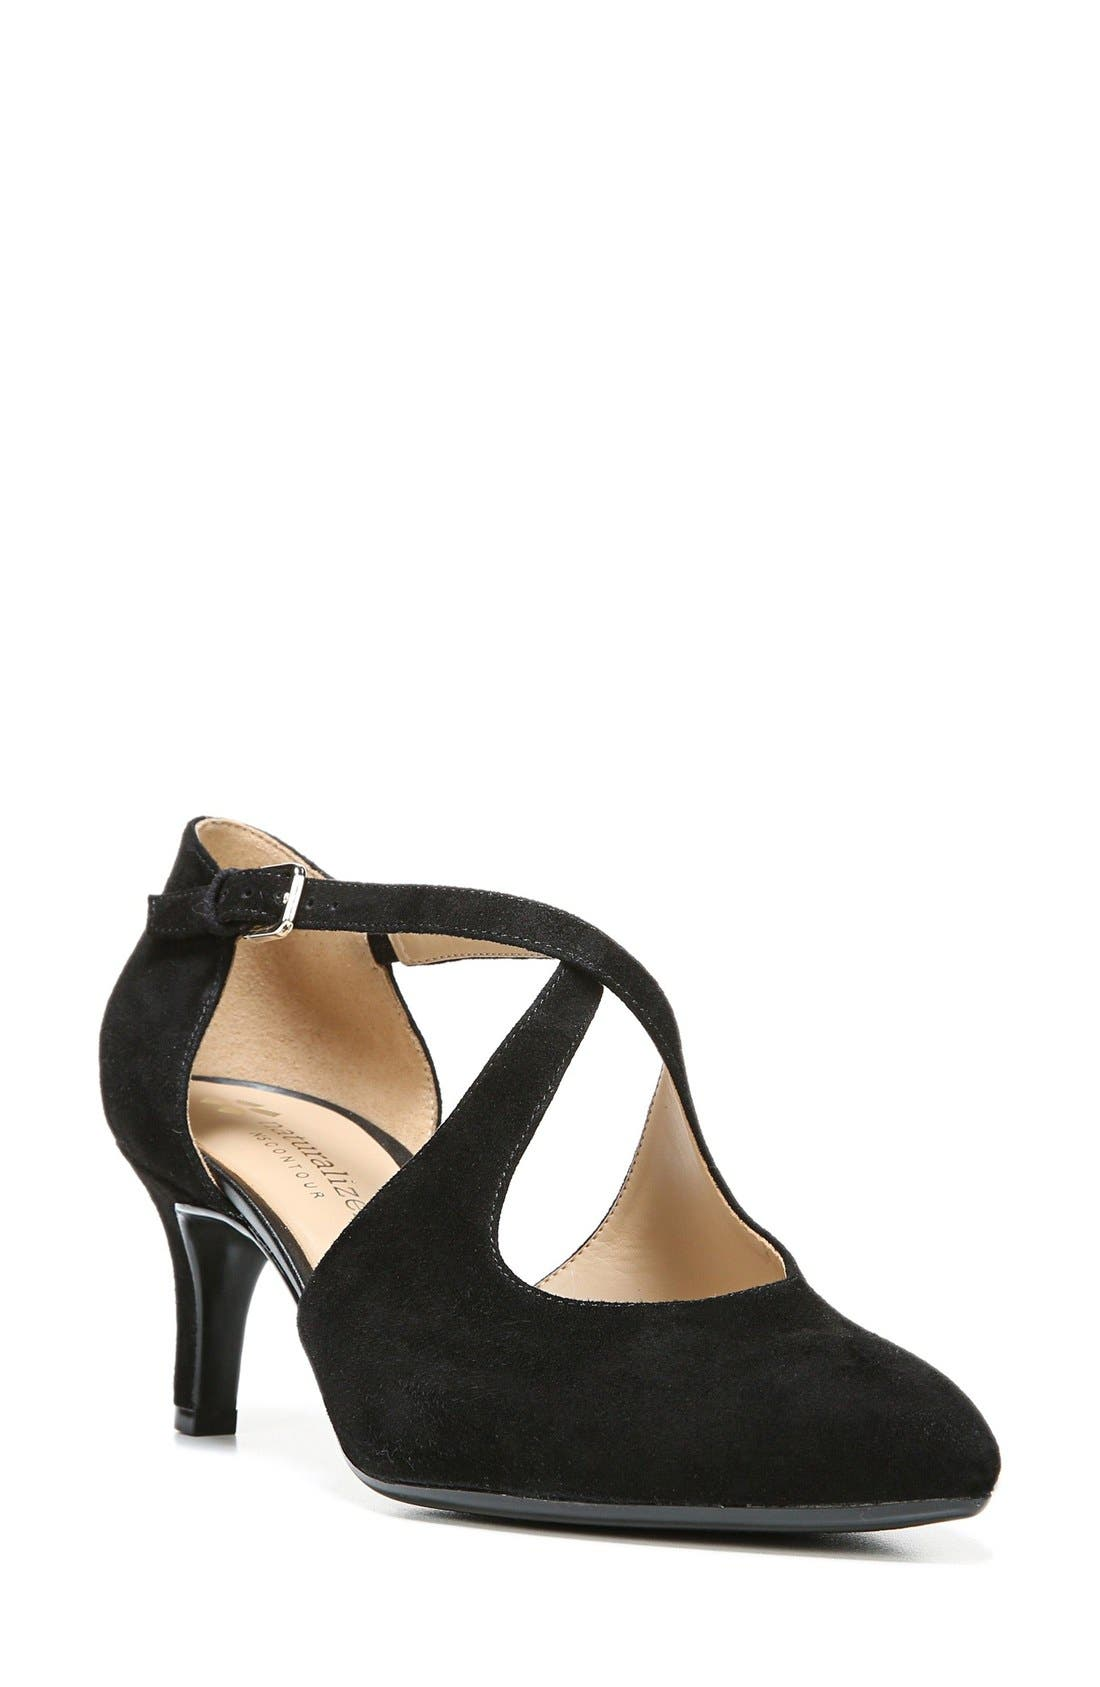 'Okira' Crisscross Pump,                         Main,                         color, Black Suede